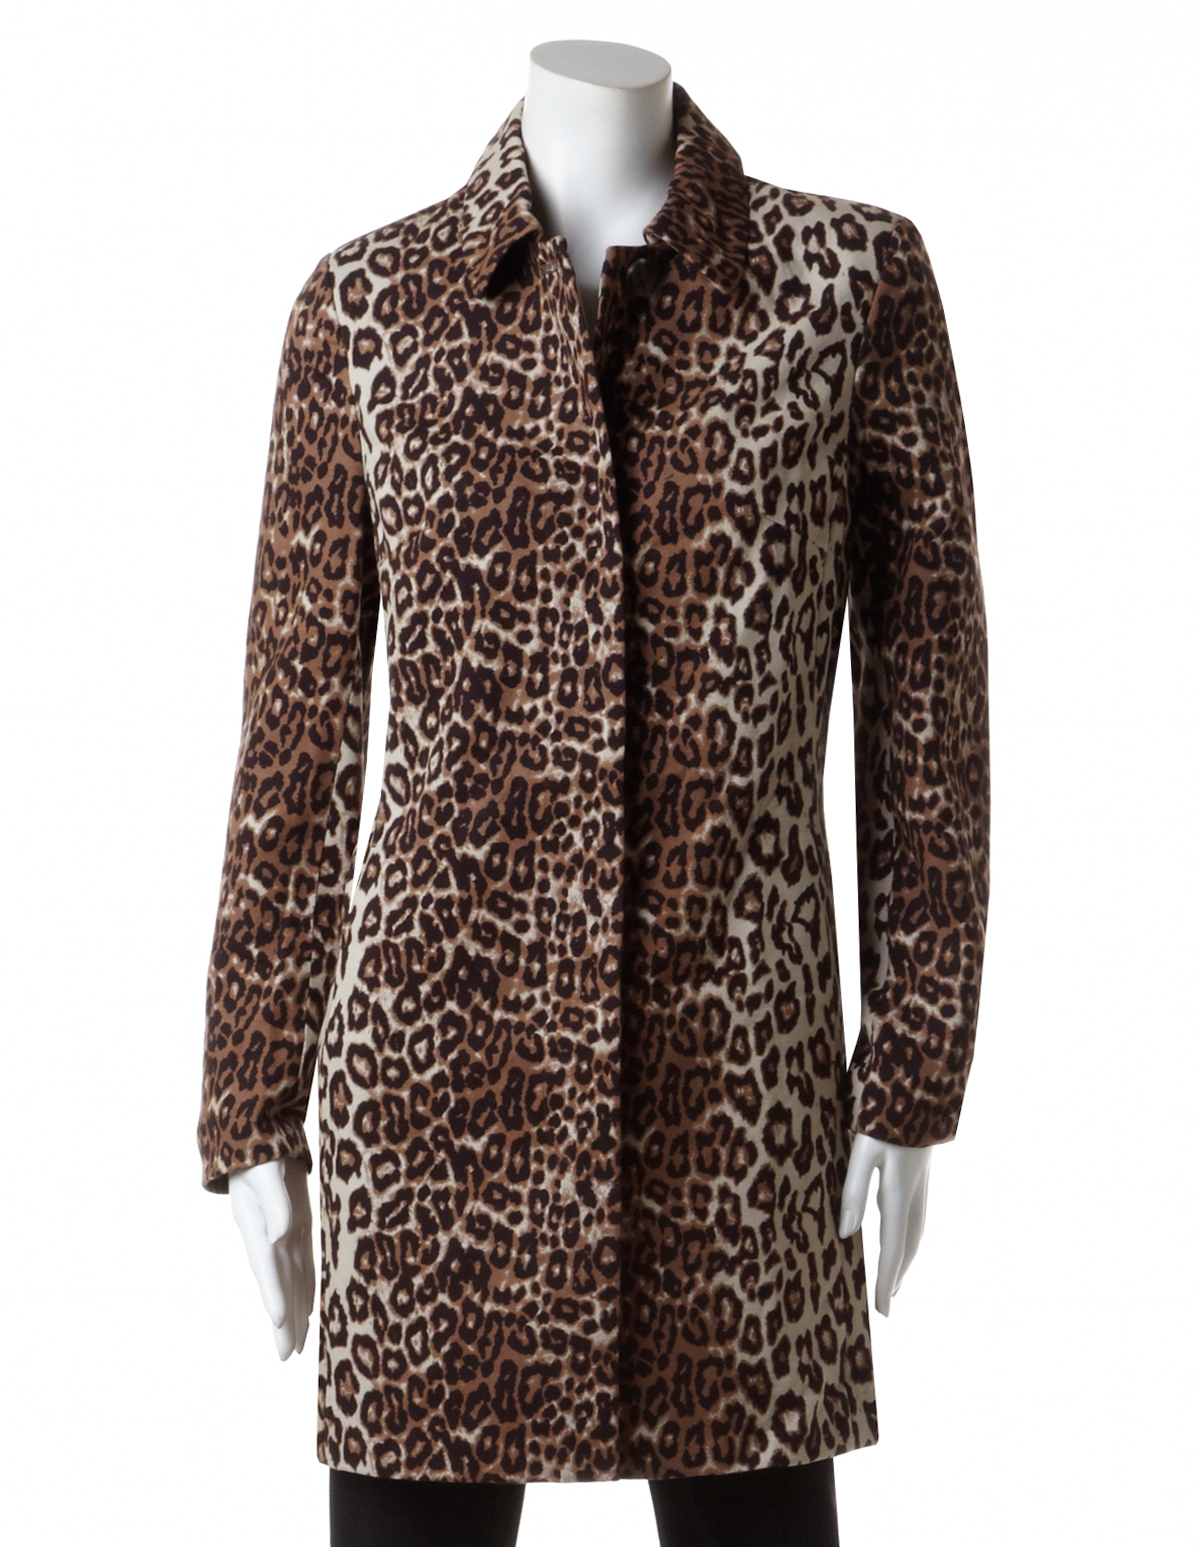 If you want a leopard-print coat with a little more edge, a wide notch collar gives this one a cool moto feel. Plus, the faux fur is a way cozier option than your go-to leather jacket. Advertisement - .